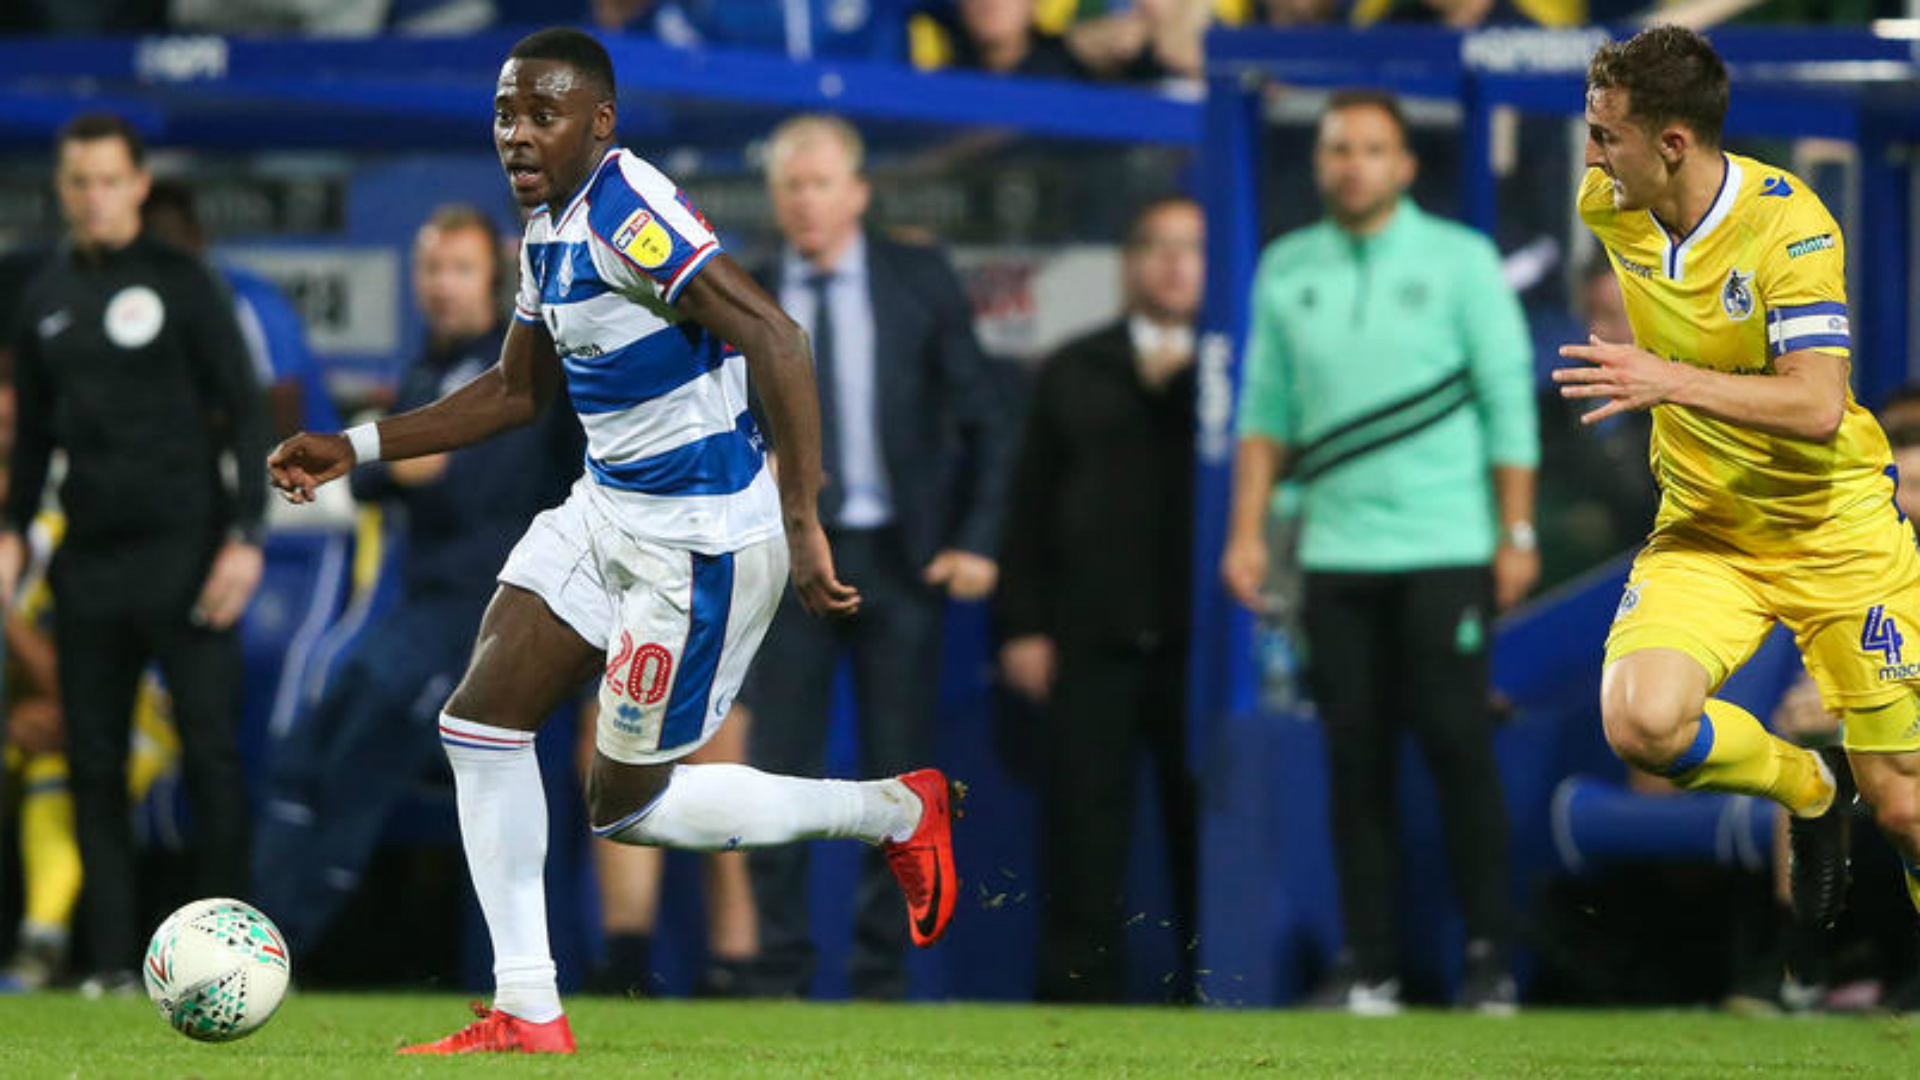 QPR's Osayi-Samuel makes Championship Team of the Week after Cardiff City heroic display